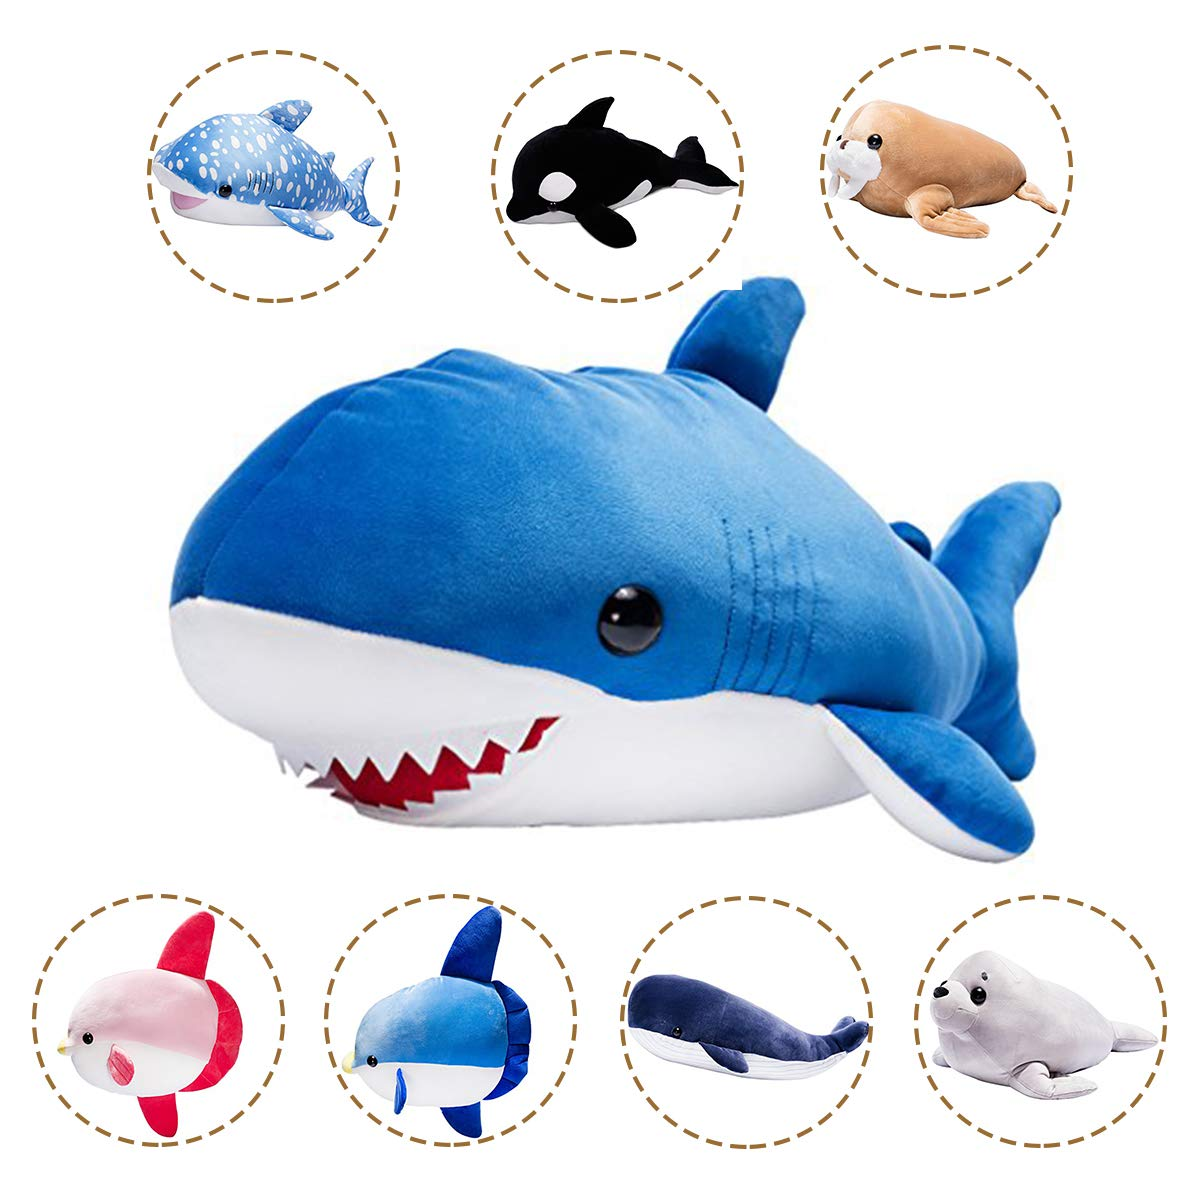 LALA HOME Neat Soft Shark Stuffed Animal | 28'' Plush Ocra Fish Toy | Large Shark Body Hugging Pillow | Children's Gifts